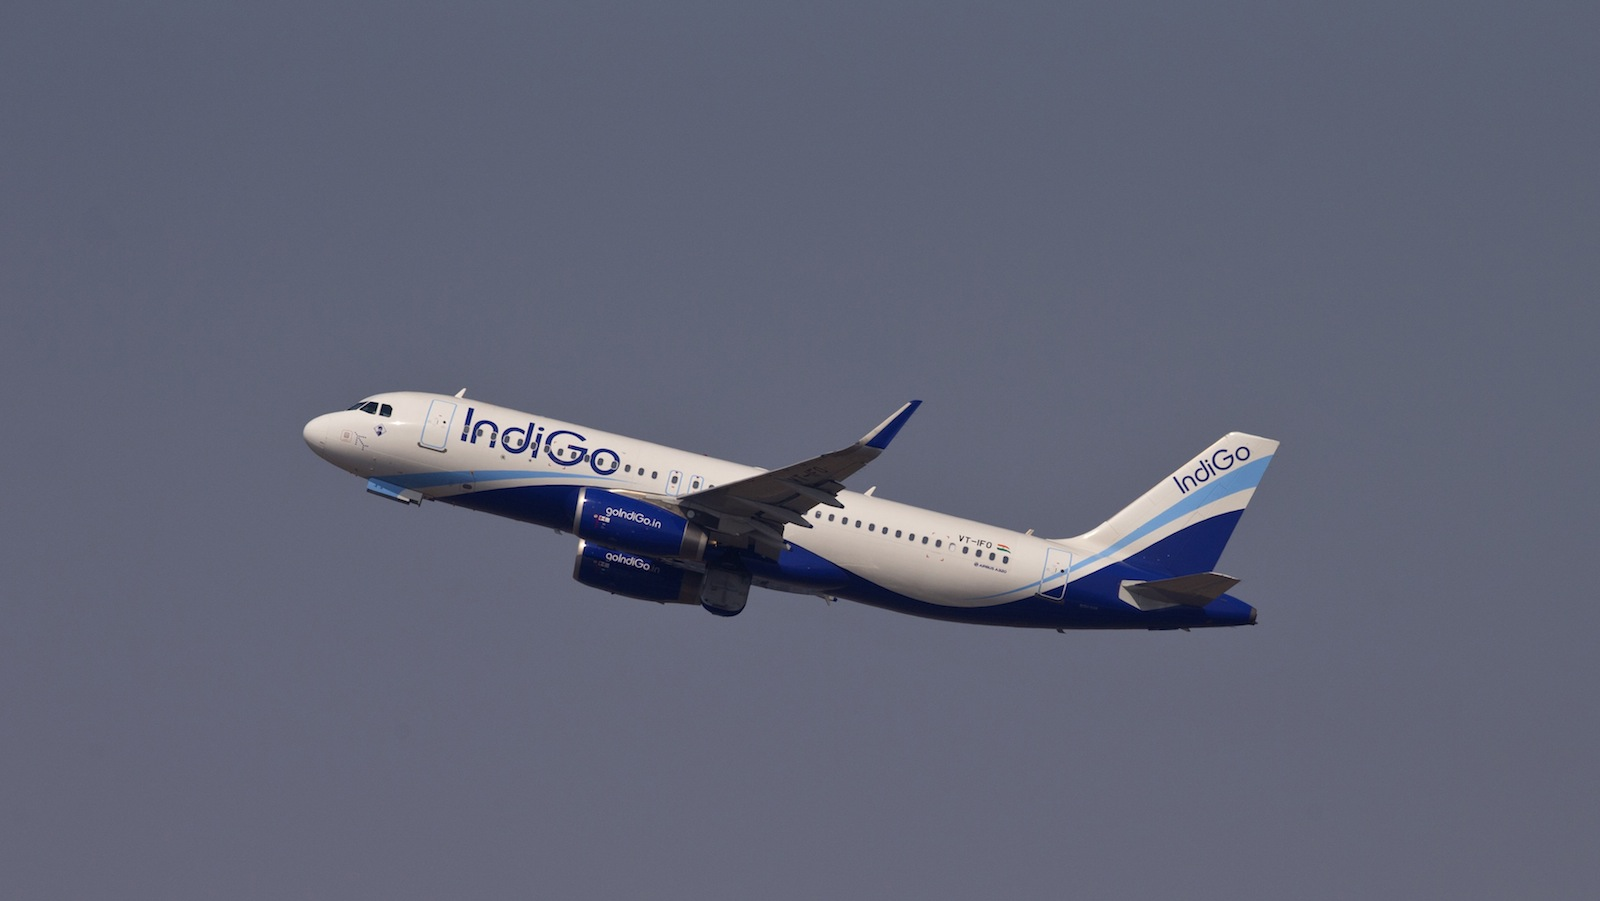 An Airbus A320 from IndiGo airlines takes off from the Indira Gandhi international airport in New Delhi, India, Thursday, Oct. 16, 2014. Indian budget airline IndiGo has signed a preliminary order with Airbus for 250 A320neo Family aircraft. Airbus said on Wednesday that the memorandum of understanding with IndiGo, India's largest domestic airline, will become Airbus' single largest order - ever - by number of aircraft.